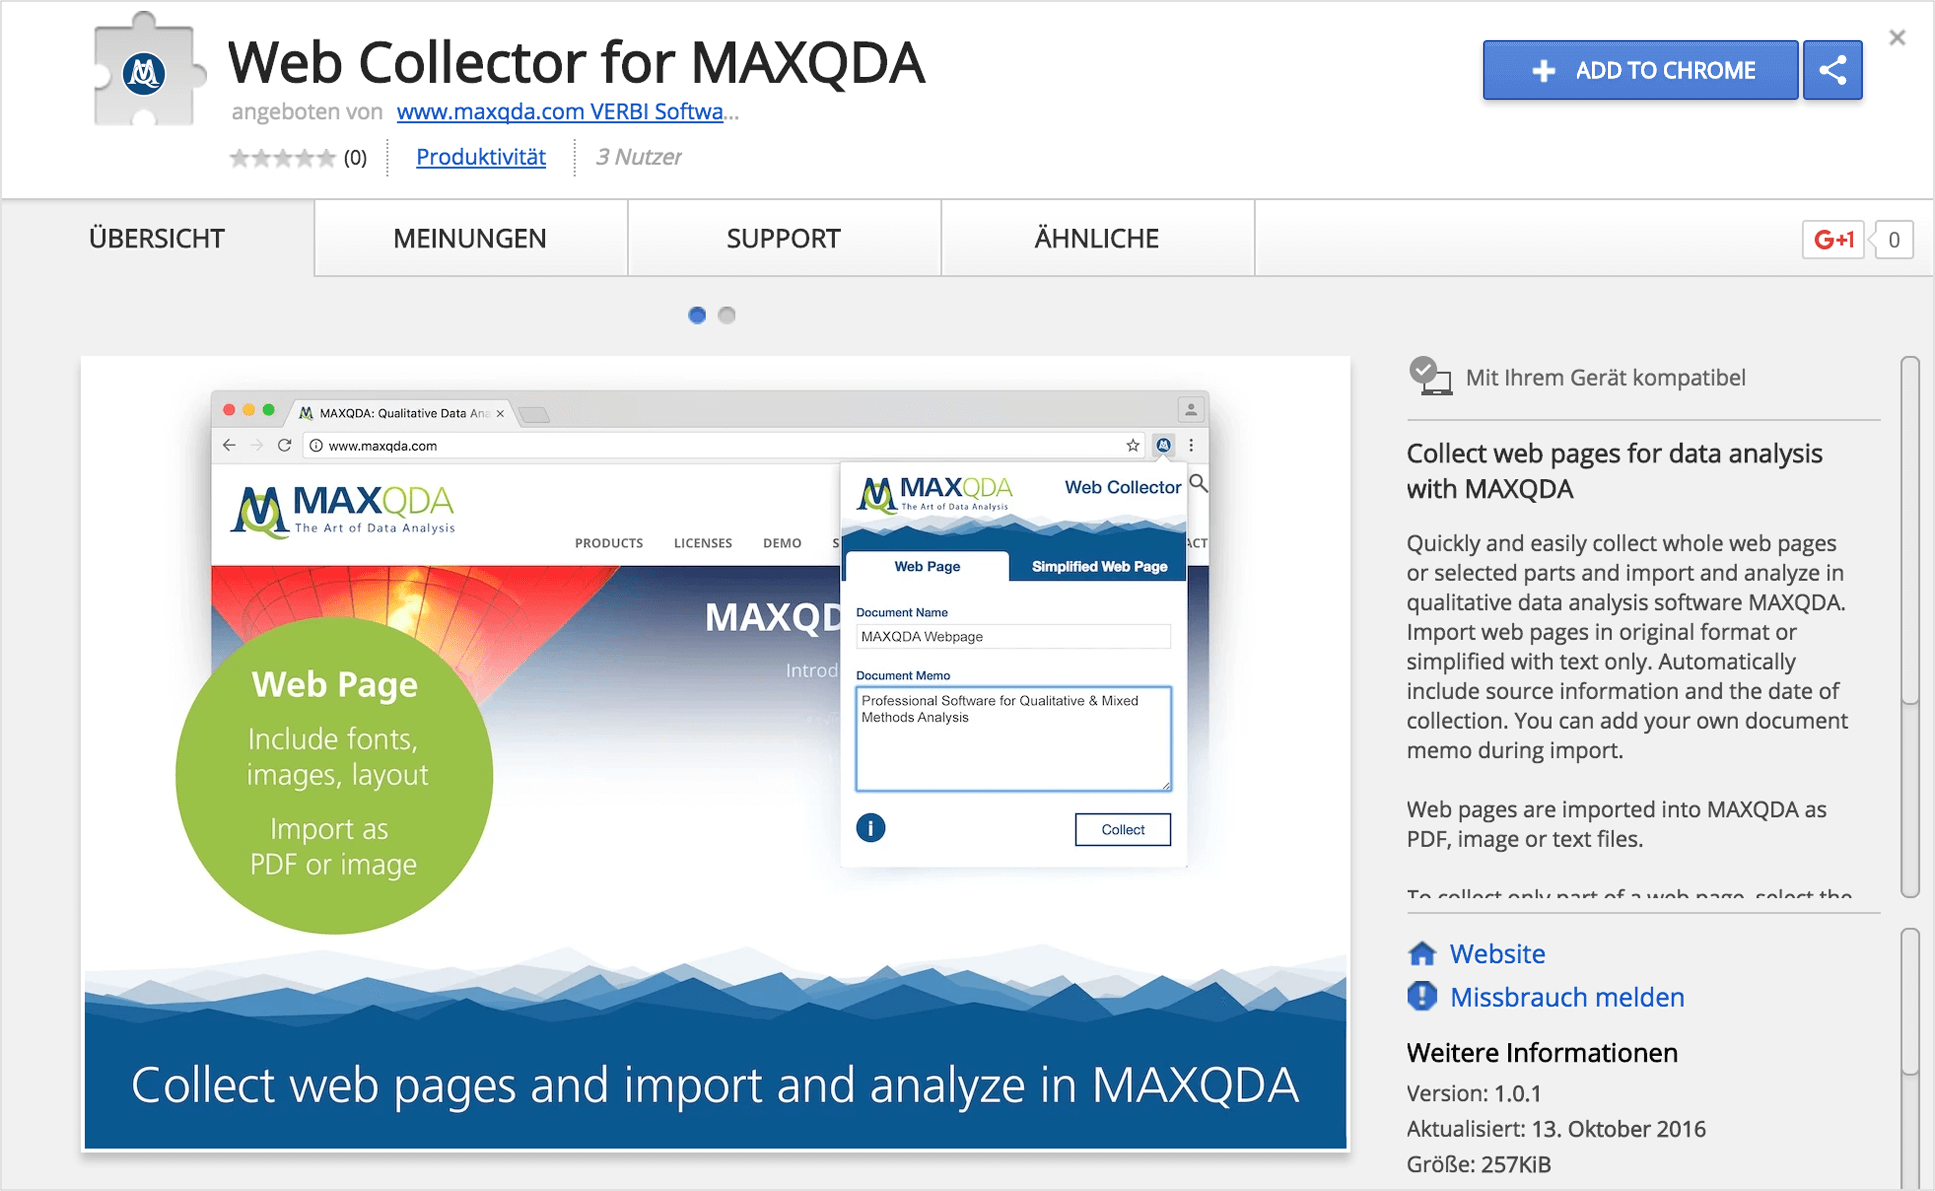 WebCollector for MAXQDA